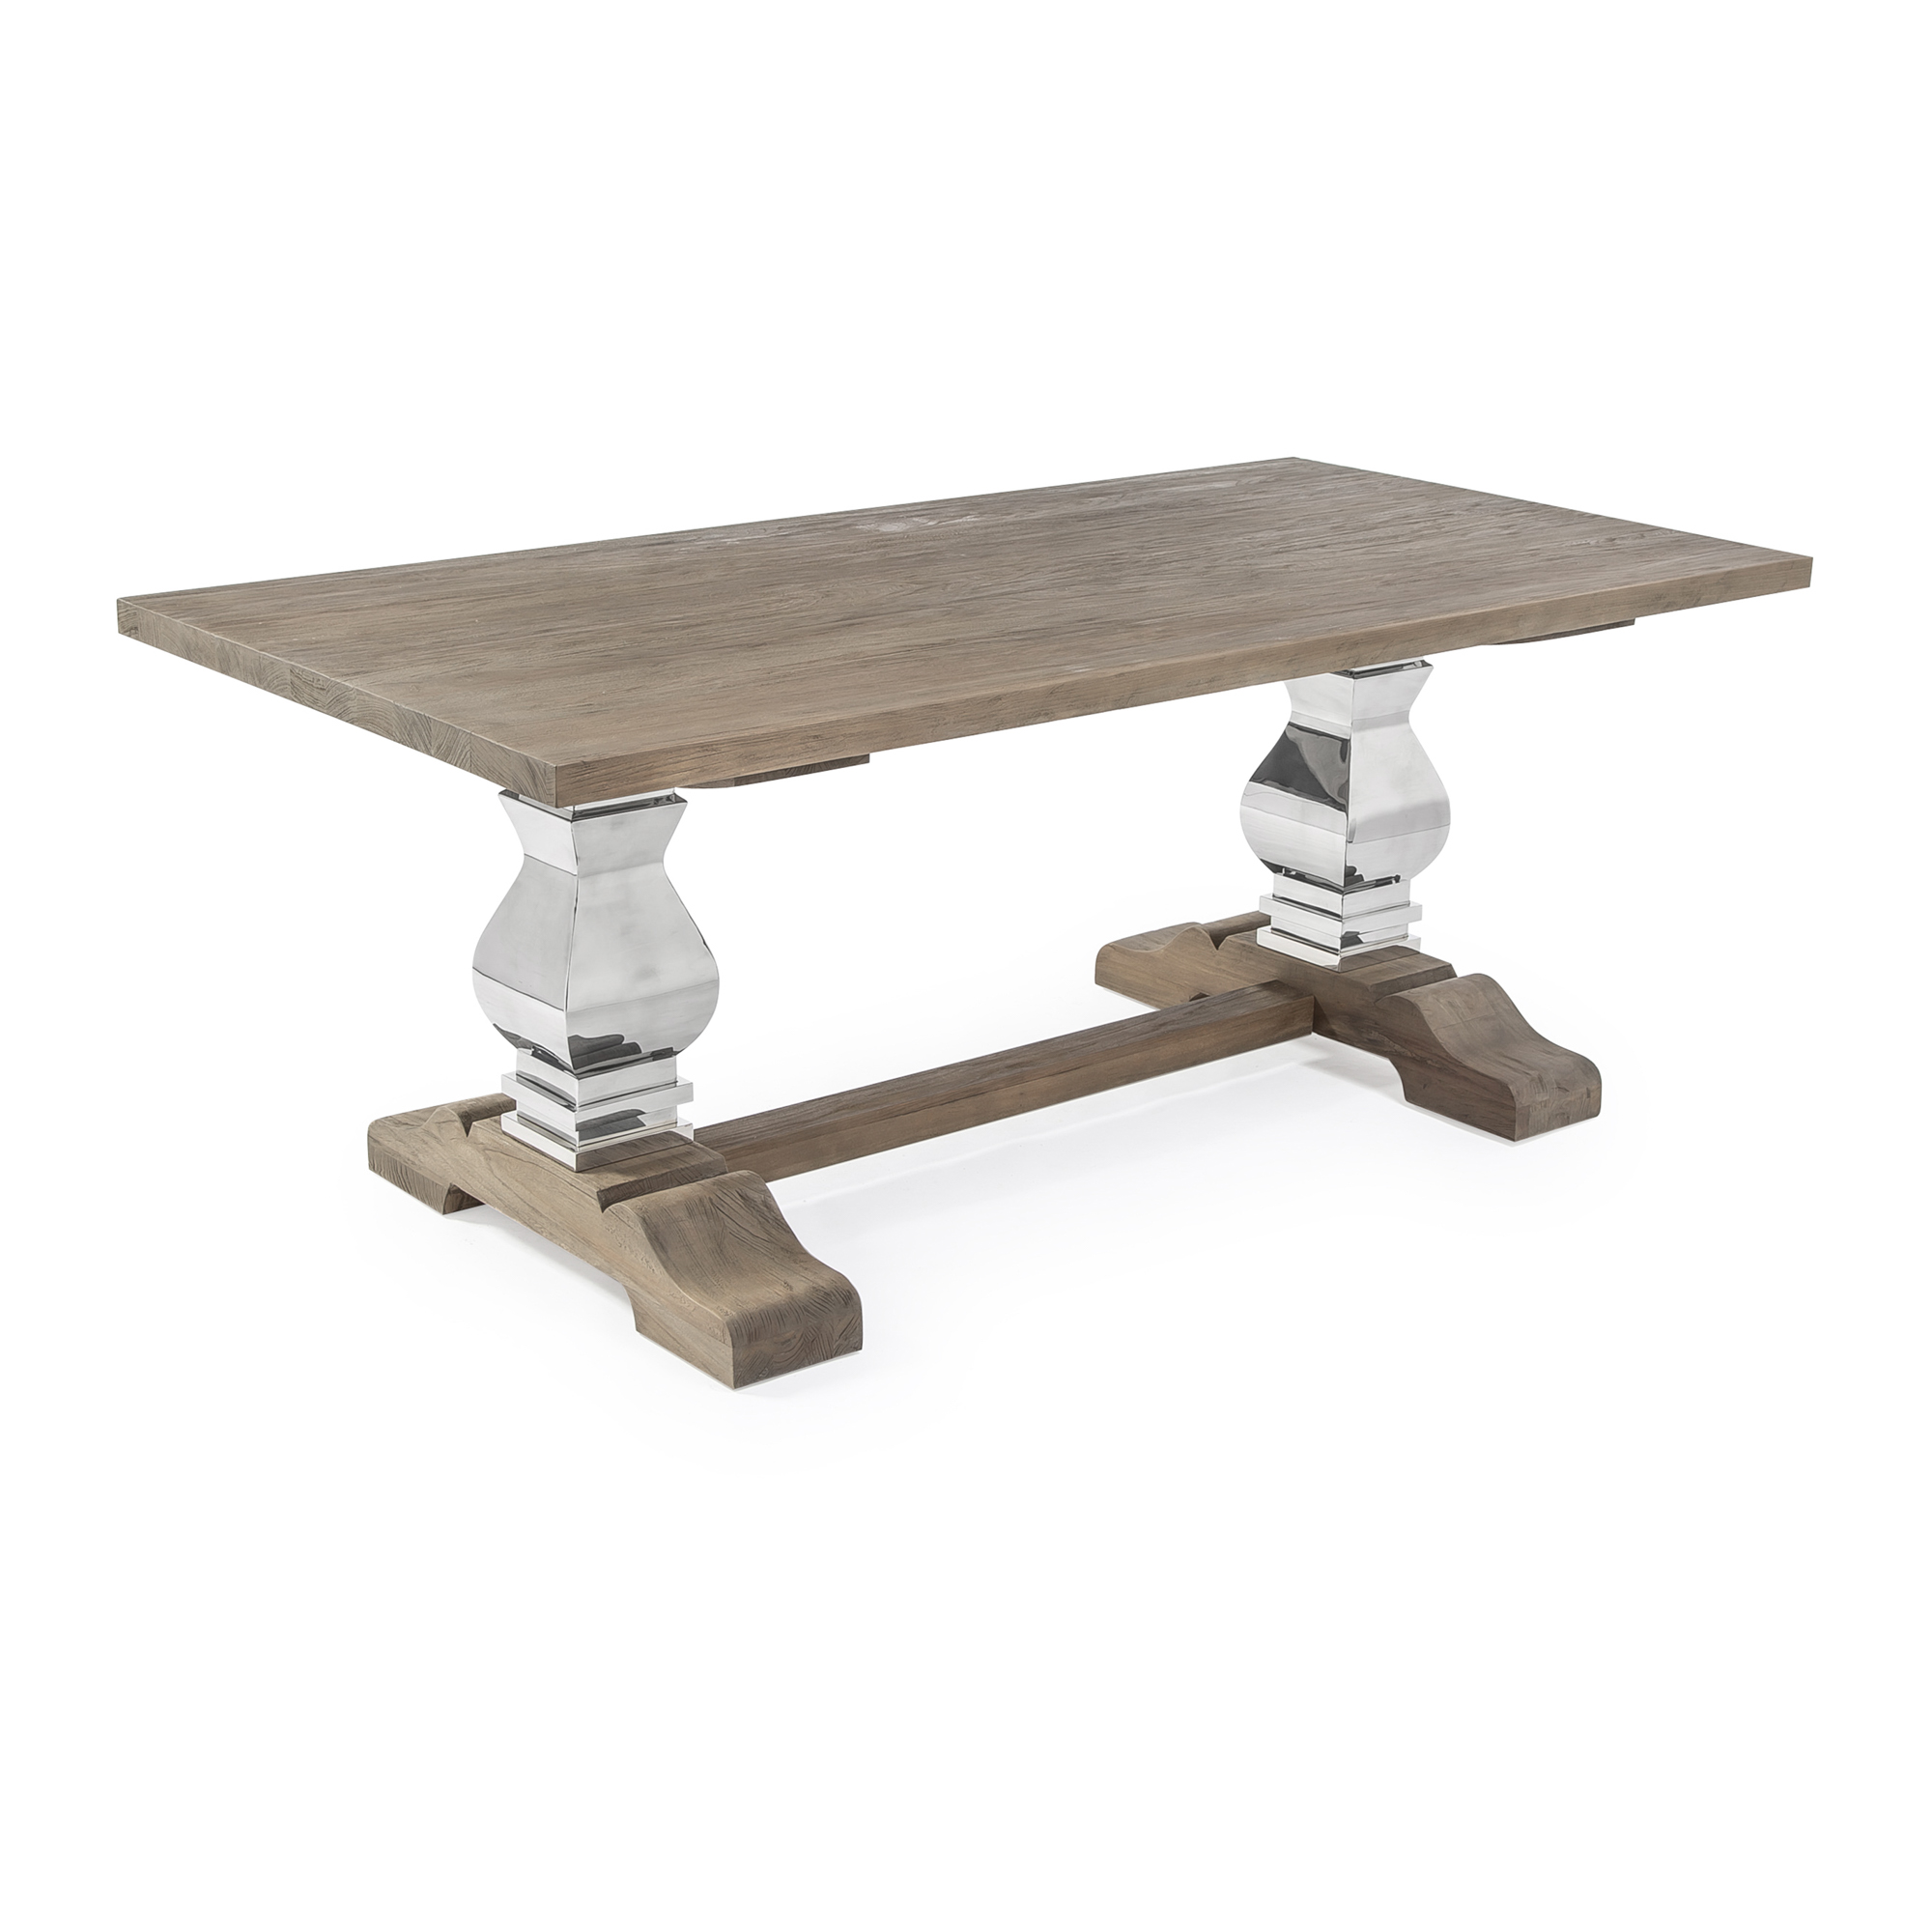 Large 2M Reclaimed Elm Dining Table with a Stainless Steel Base